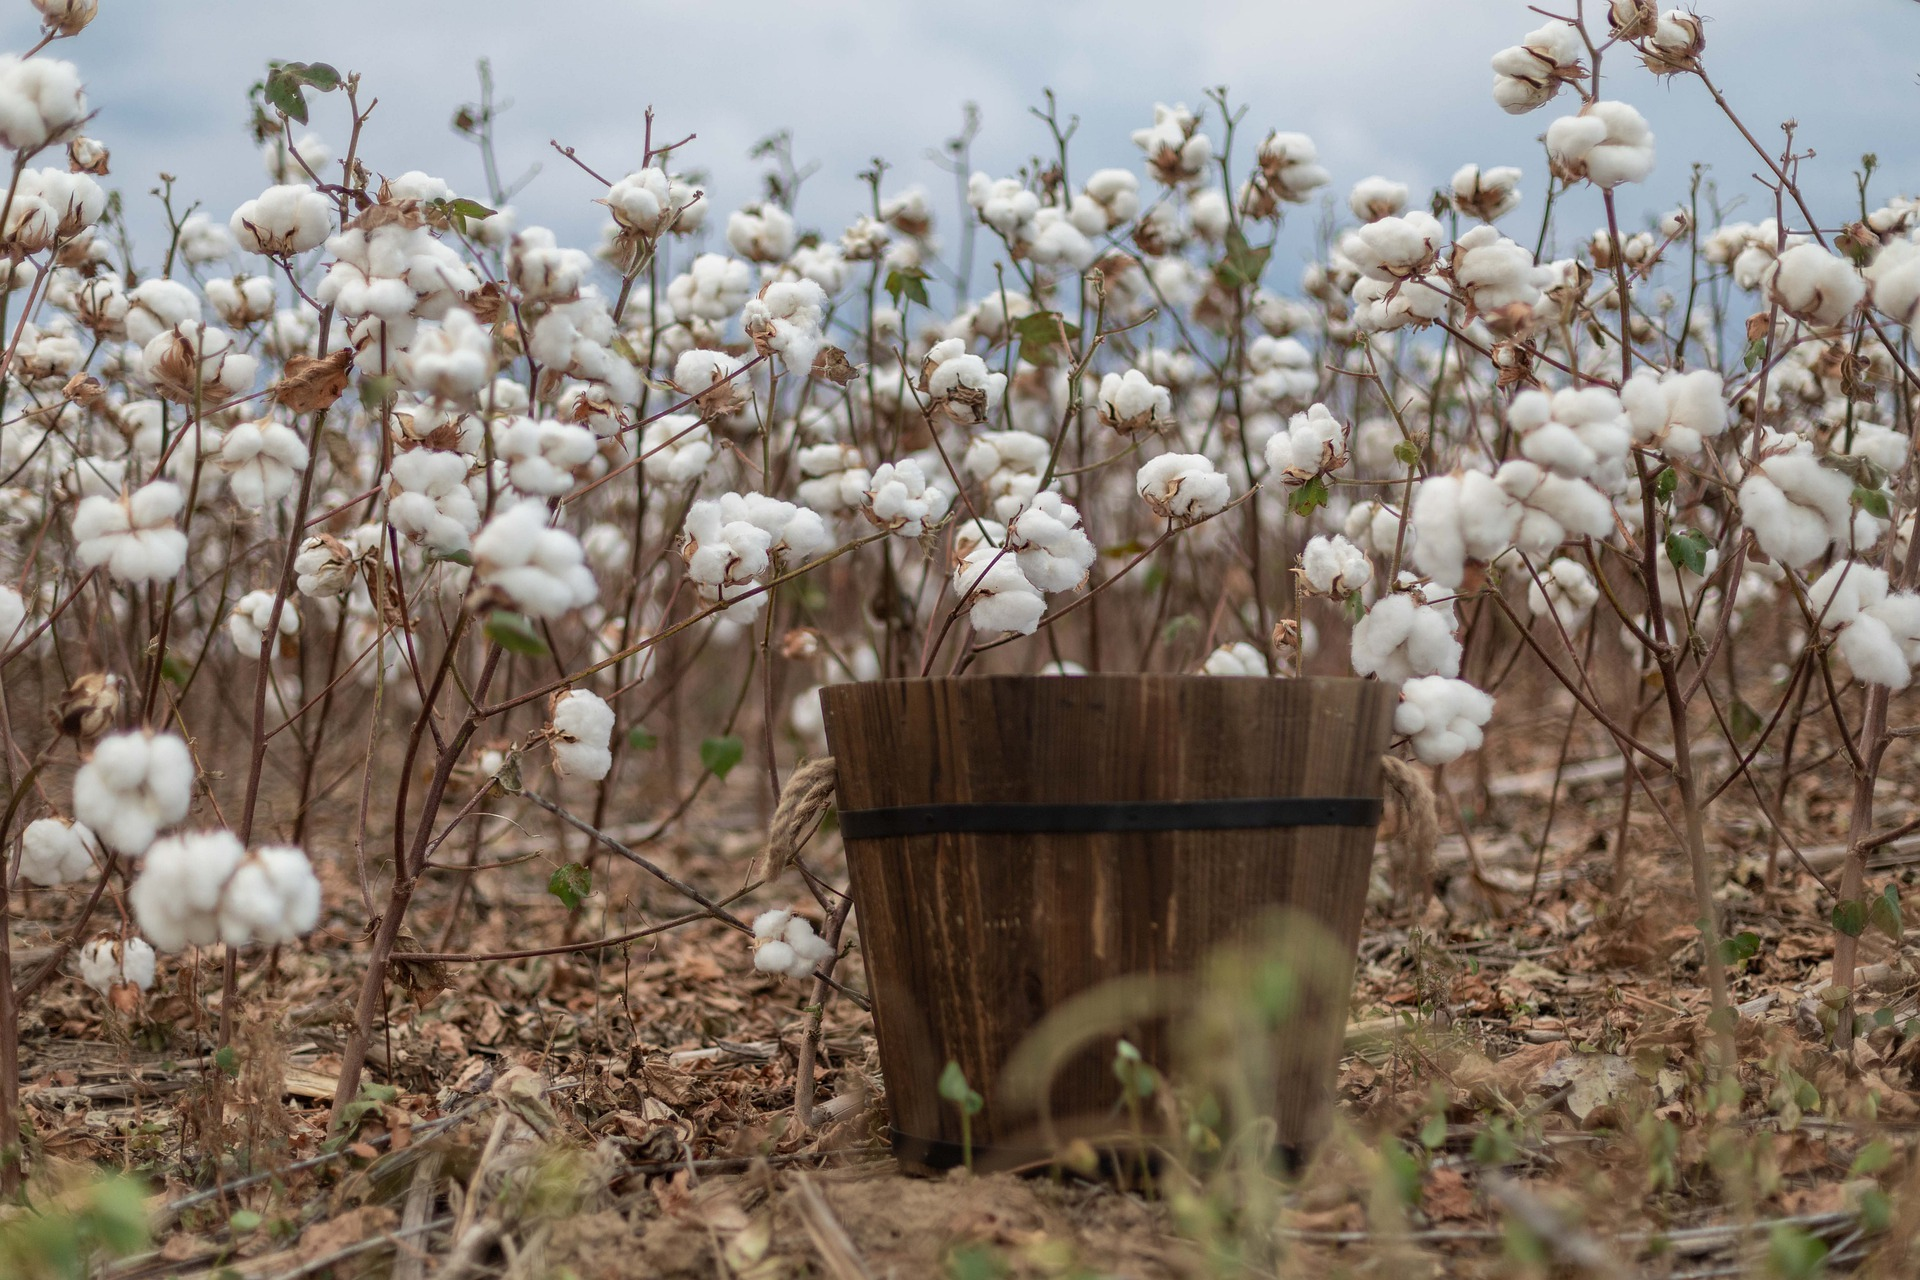 Agriculture In Iran: Within the upcoming cropping year (1400), 98,000 kg of cotton will be produced as the result of cultivations of Gossypium farmland in Iran.